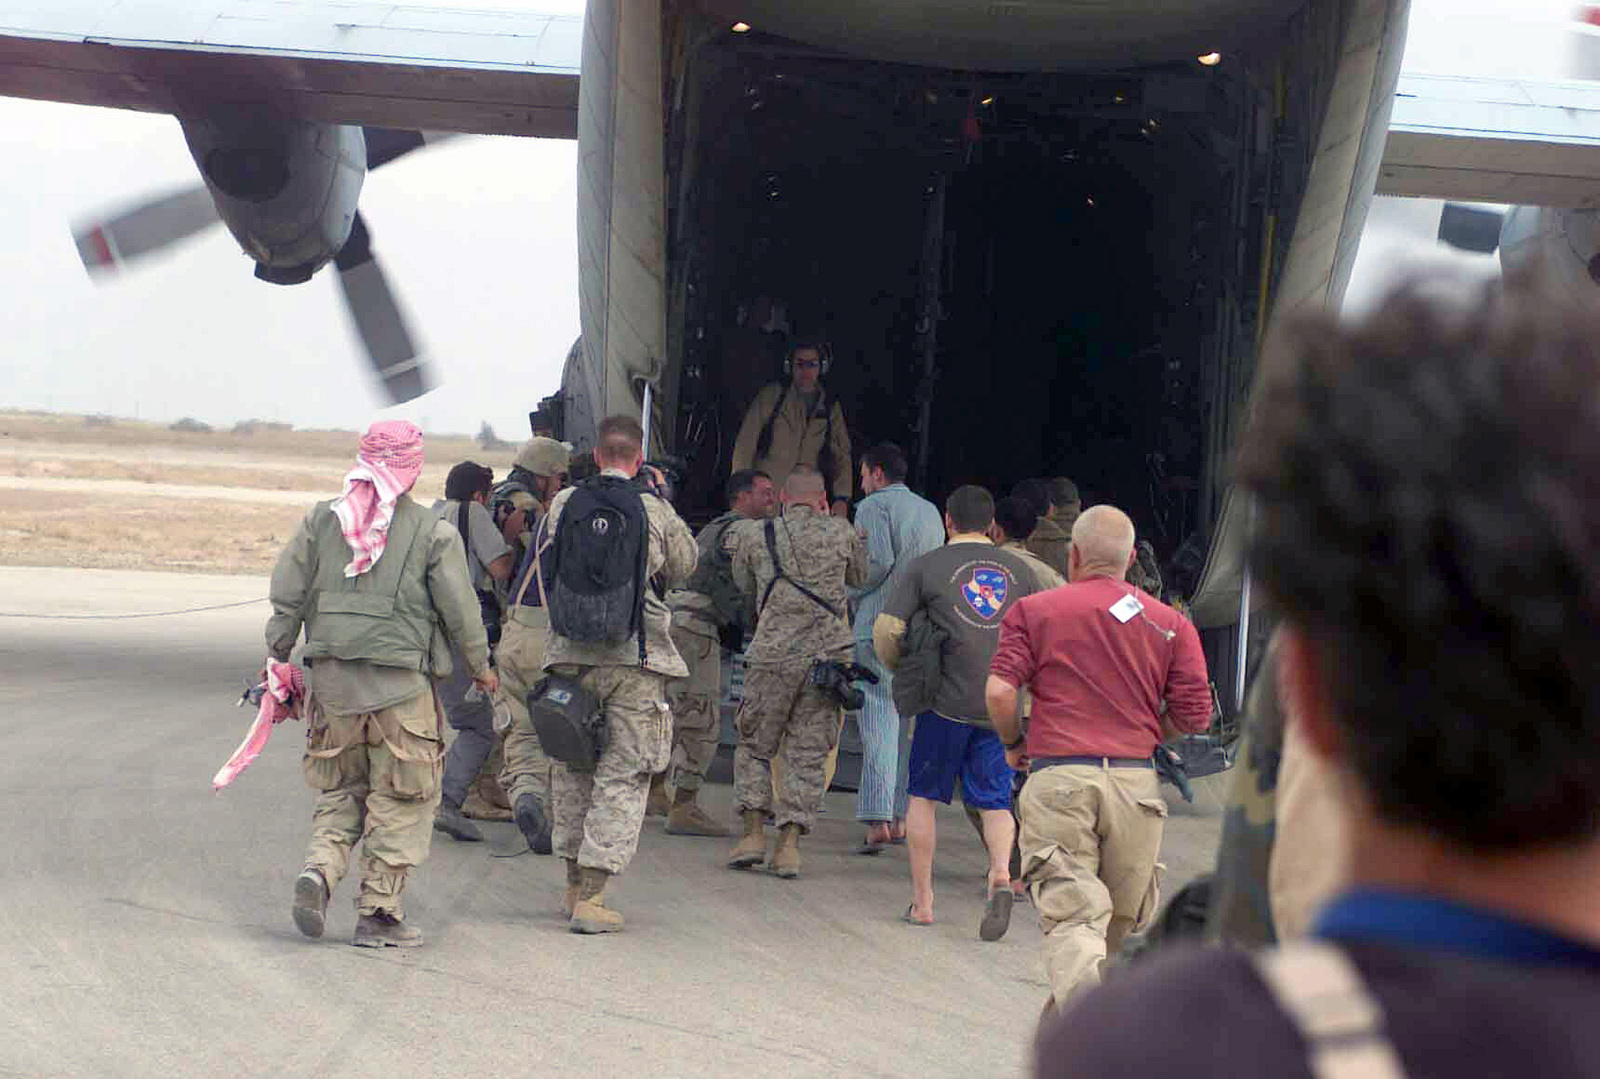 US Army (USA) CHIEF Warrant Officer (CWO) Ronald Young, (wearing striped blue pajamas) and USA Private First Class (PFC) Patrick Miller (green T-shirt and blue shorts) are congratulated by soldiers and photographed by members of the News Media as they board a US Air Force (USAF) C-130 Hercules aircraft at Logistical Support Area Chesty, 65-miles south of Baghdad, Iraq. COW Young and PFC Miller are two of seven America Prisoners of War (POW's) that were recovered safely by US Marine Corps (USMC) 3rd Light Armored Reconnaissance Platoon, 1ST Marine Expeditionary Force, during Operation IRAQI FREEDOM